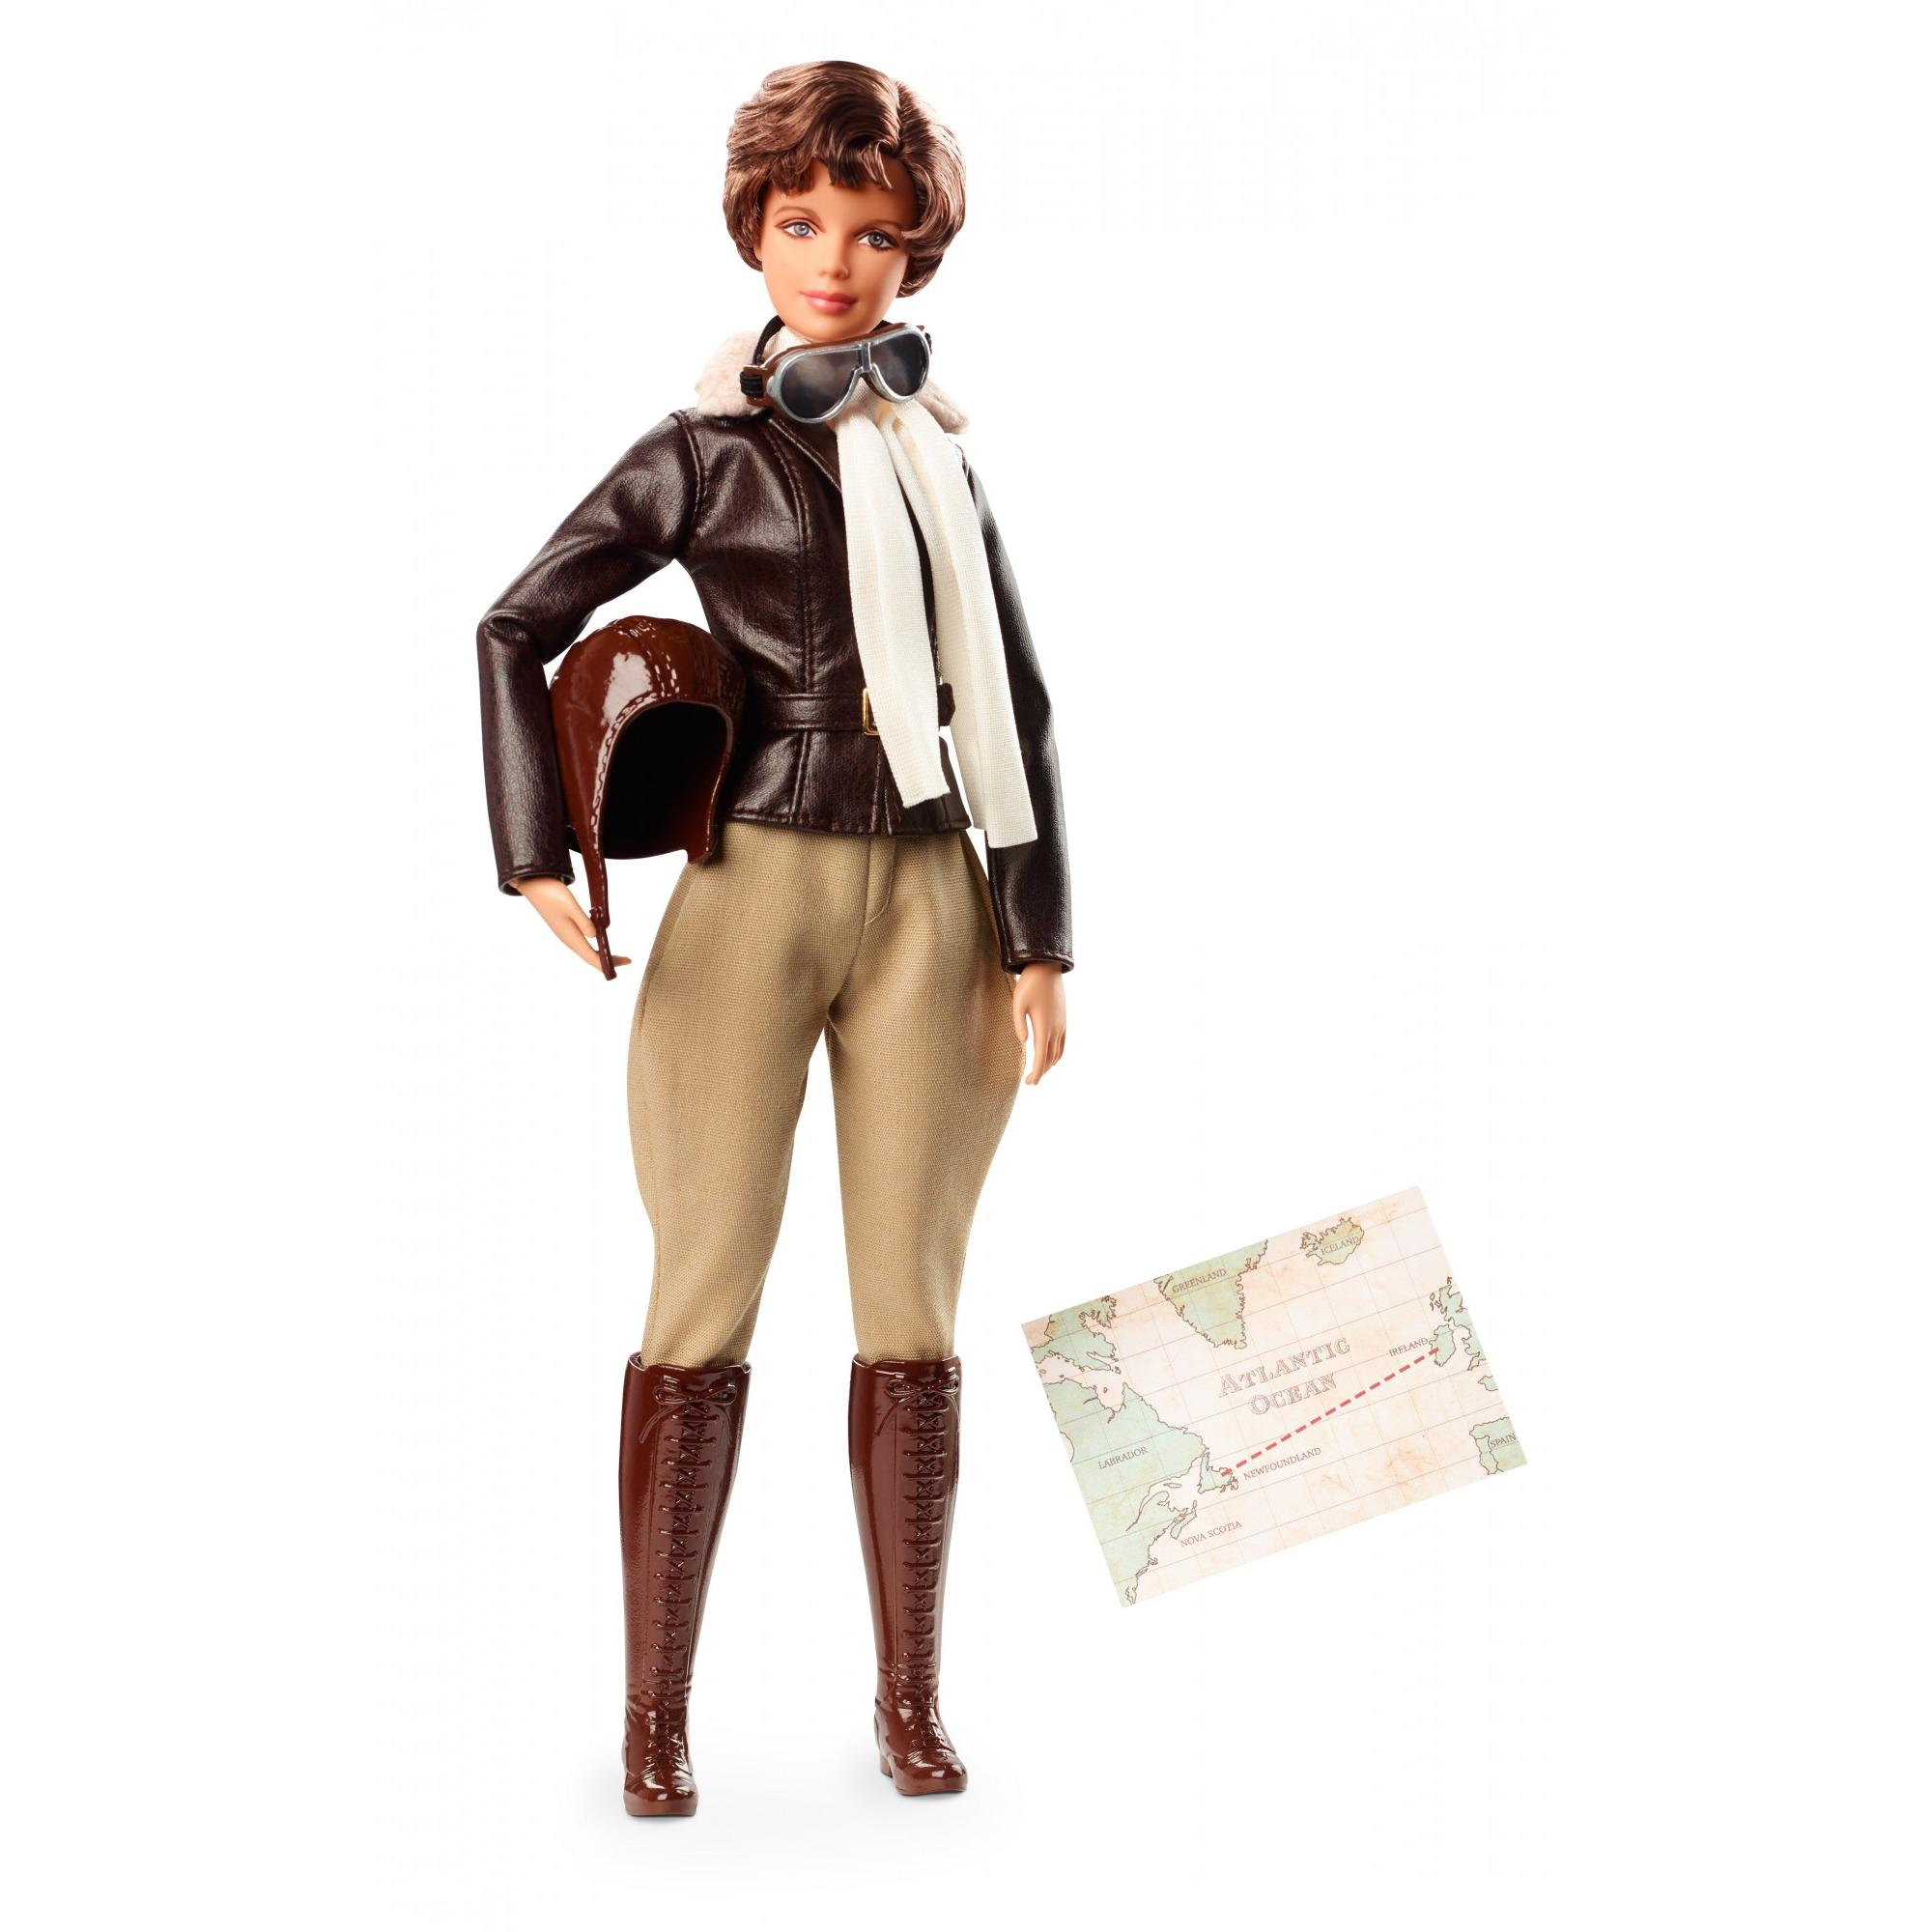 Barbie Inspiring Women Series Amelia Earhart Doll by Mattel